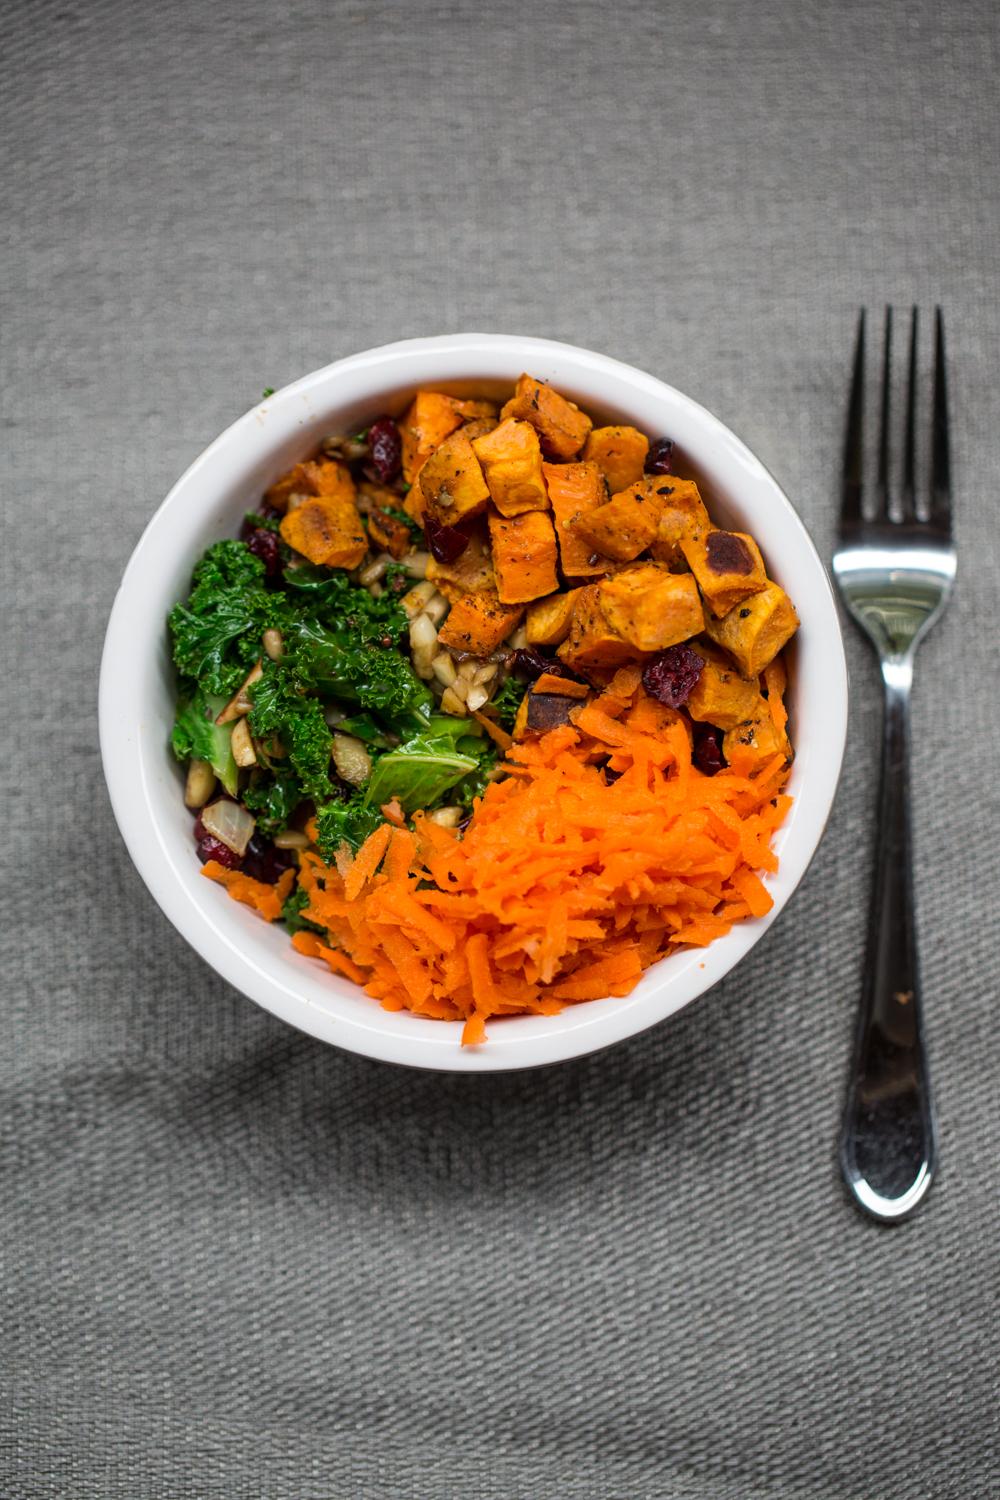 Kale Salad with yam carrot and cranberry -2014